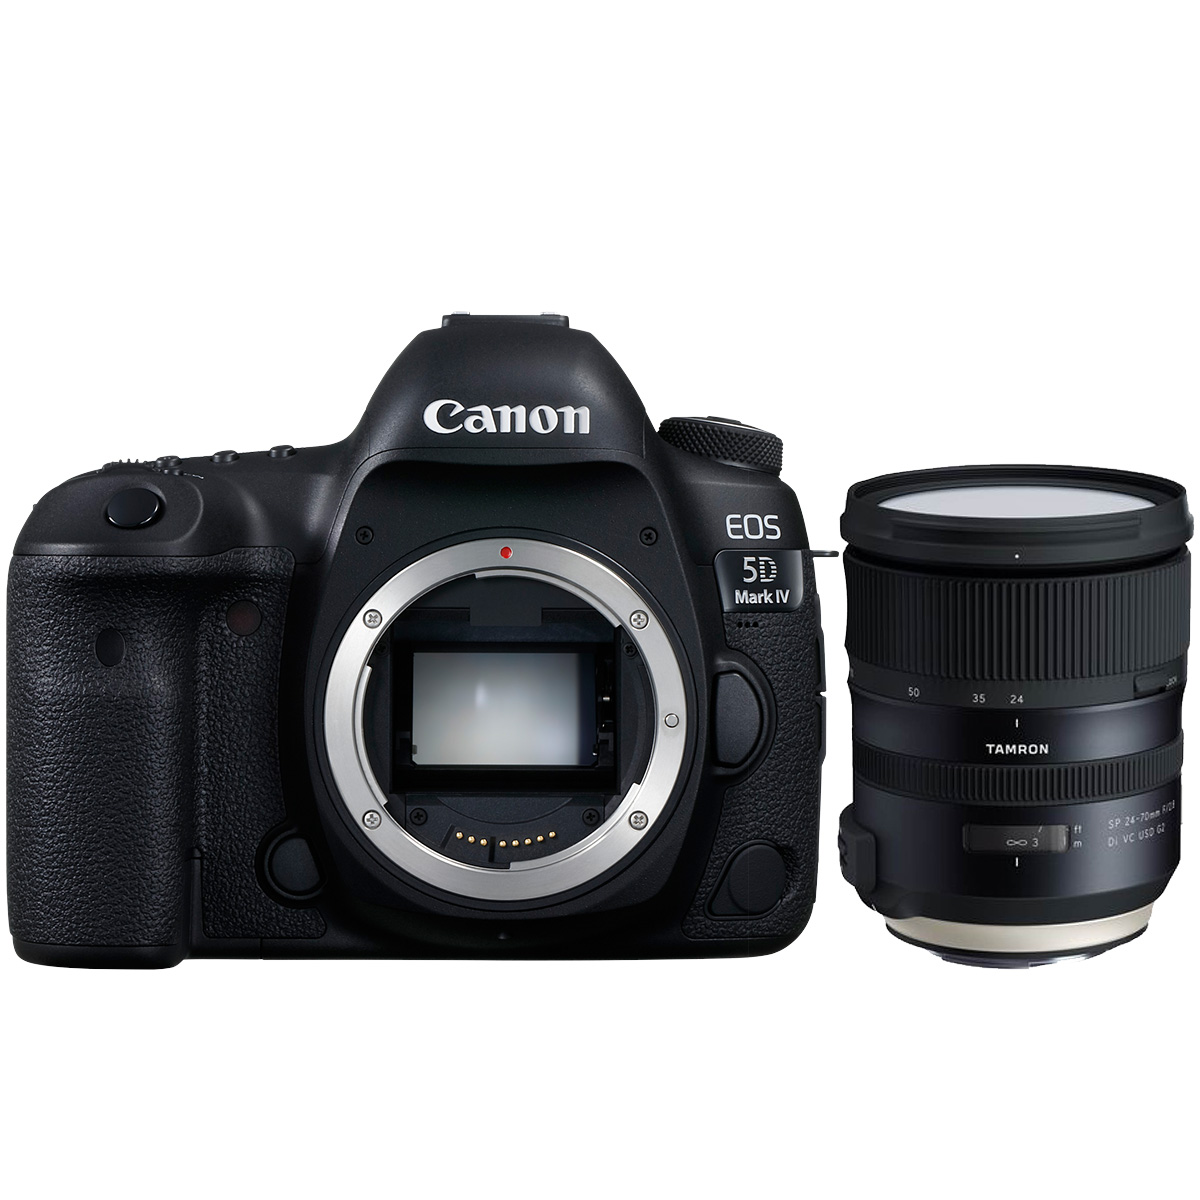 Canon EOS 5D Mark IV + Tamron SP 24-70mm 1:2,8 VC USD G2